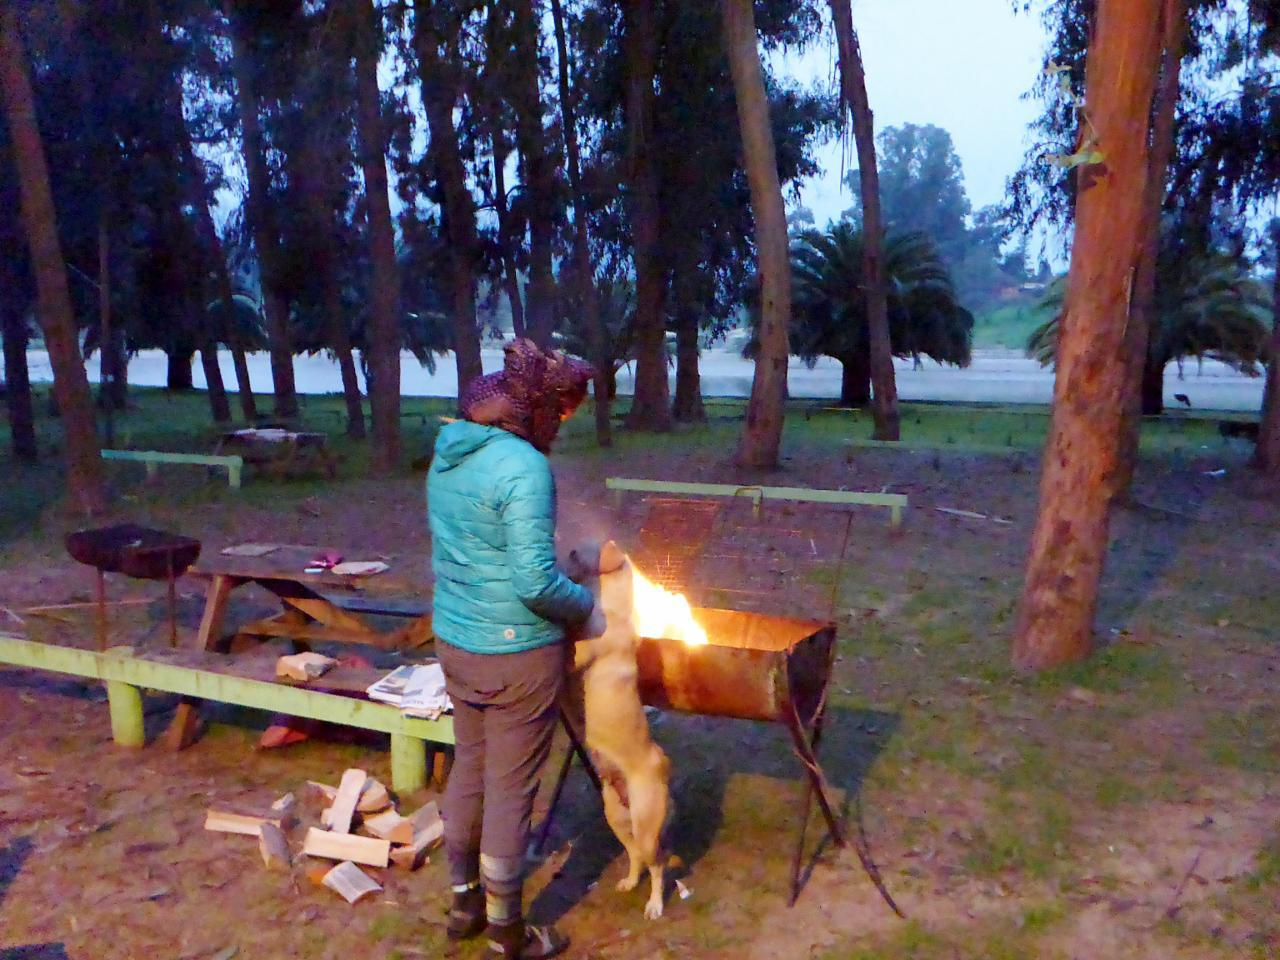 Jocelyn cooks dinner and made a fine fire. She also found a new friend.